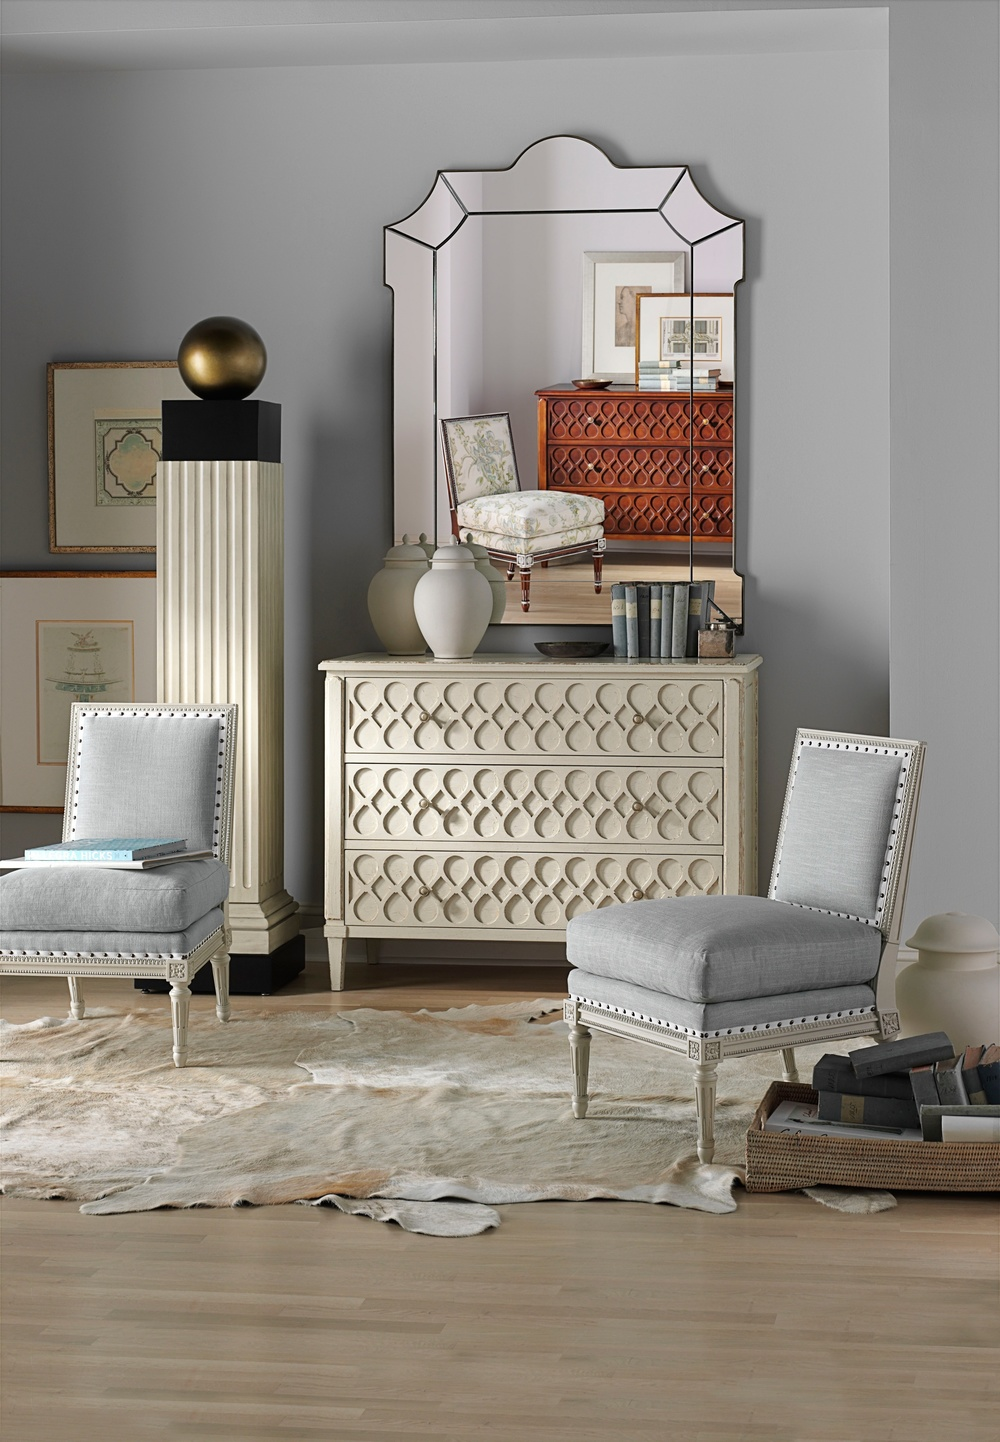 Hickory Chair - Ansley Slipper Chair